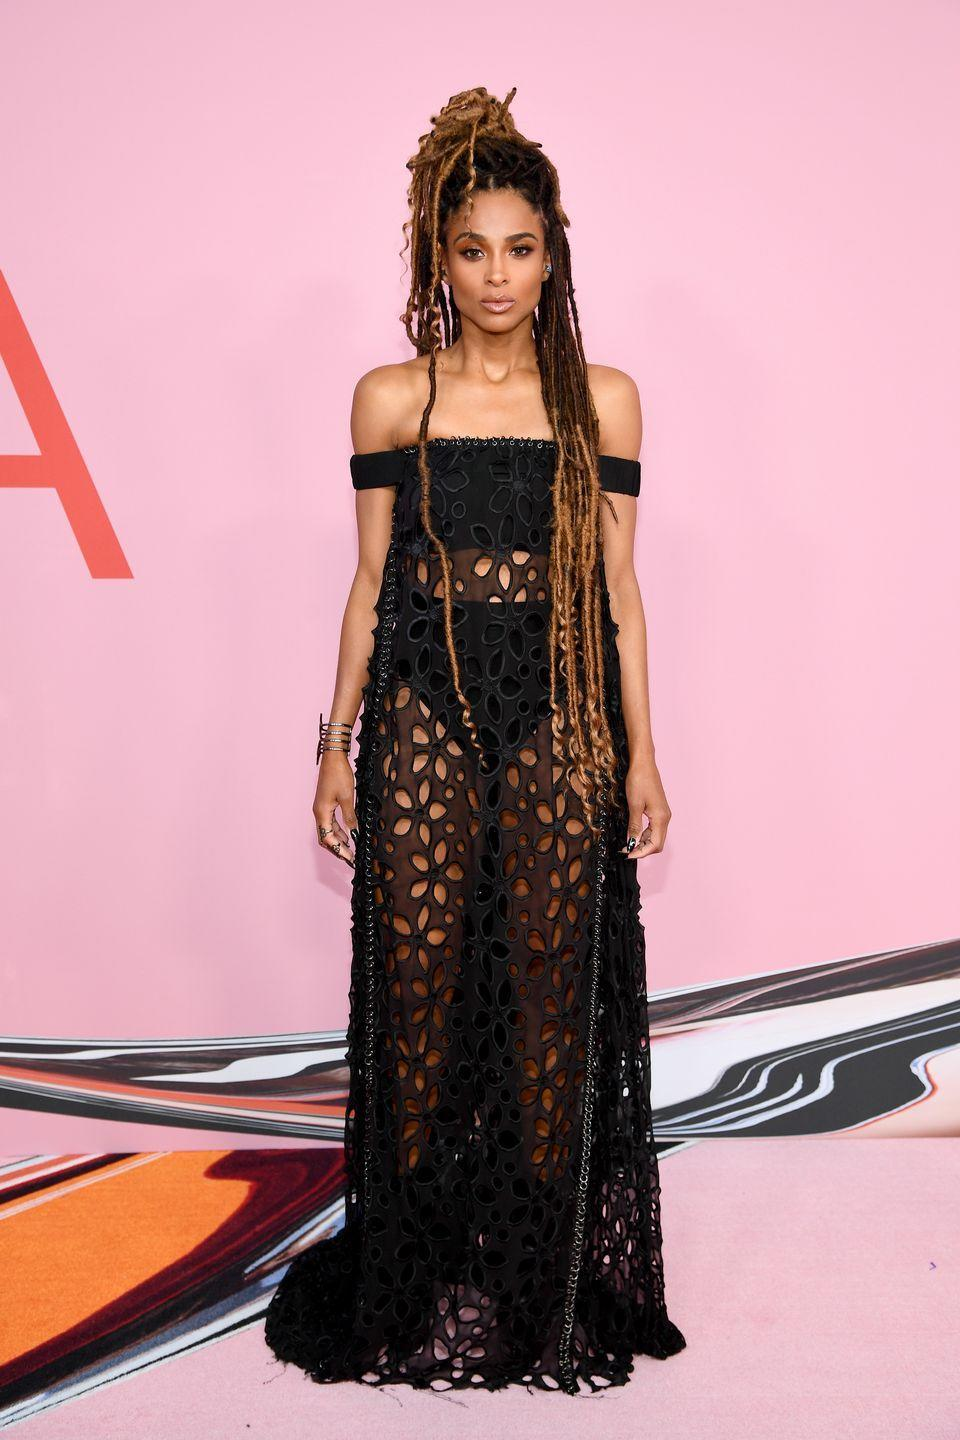 """<p>Singer <strong>Ciara</strong> is serving us boho chic with these long <a href=""""https://www.goodhousekeeping.com/beauty/hair/g23012086/crochet-hairstyles/"""" rel=""""nofollow noopener"""" target=""""_blank"""" data-ylk=""""slk:faux locs"""" class=""""link rapid-noclick-resp"""">faux locs</a>! This is a great protective style for those that love locs but don't want the permanent commitment. </p>"""